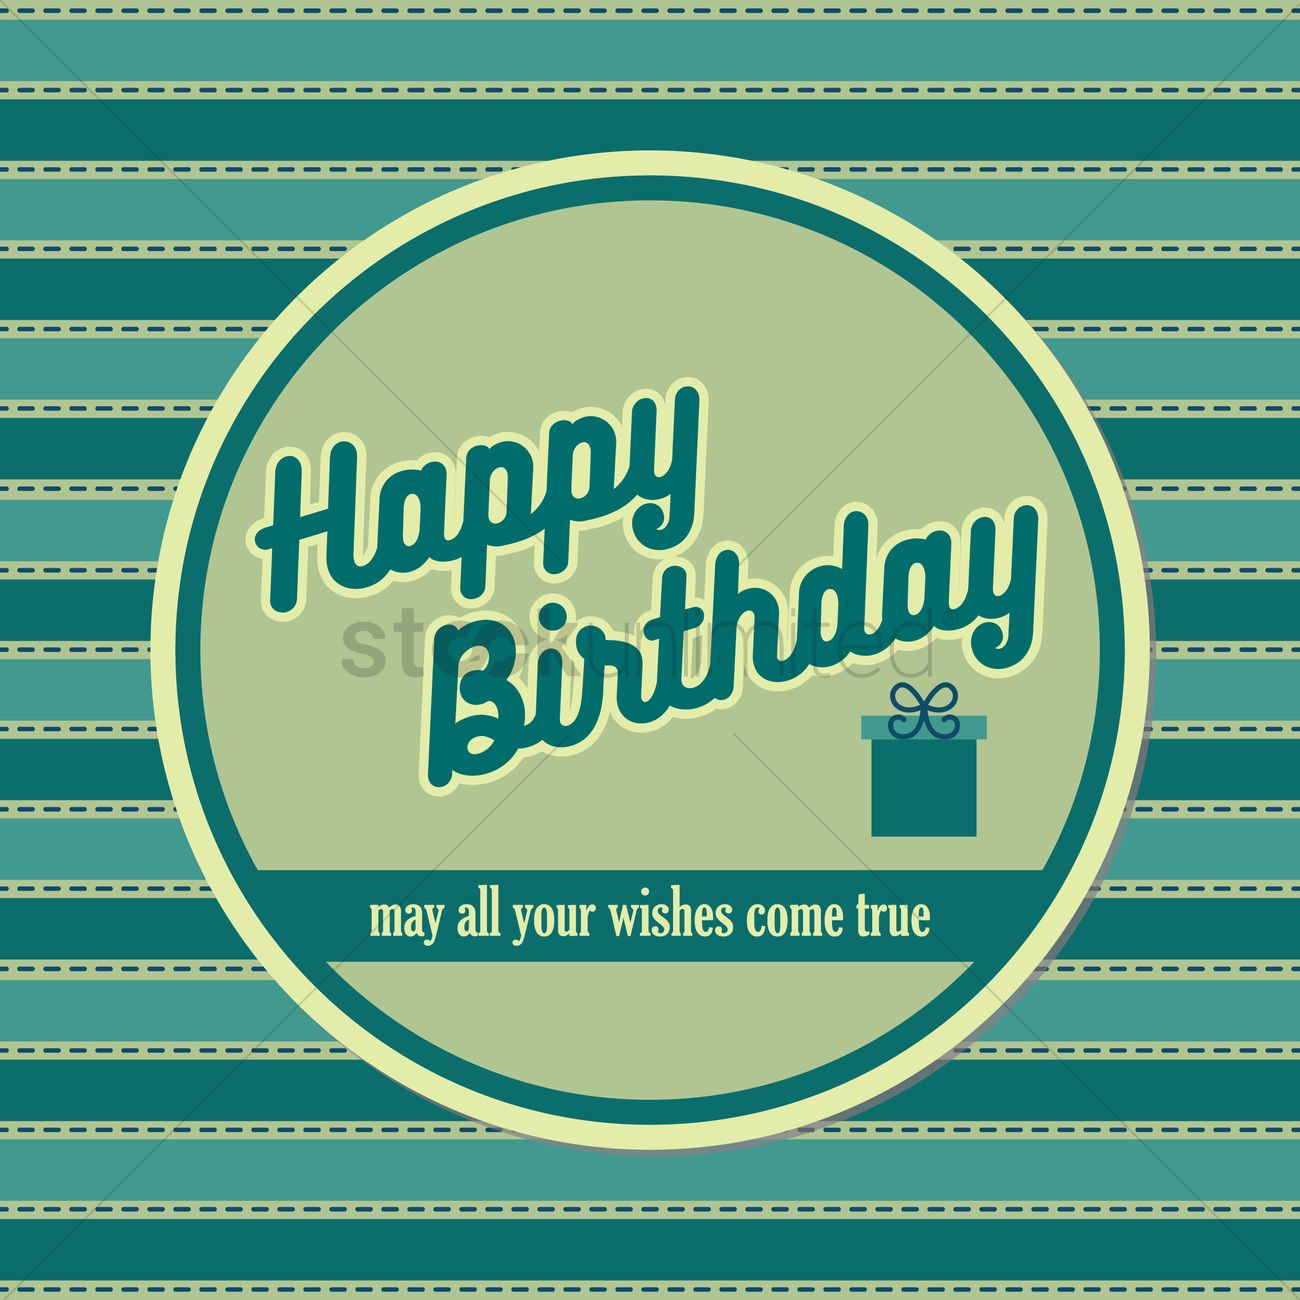 Happy Birthday Wishes Vector Image 1791435 Stockunlimited